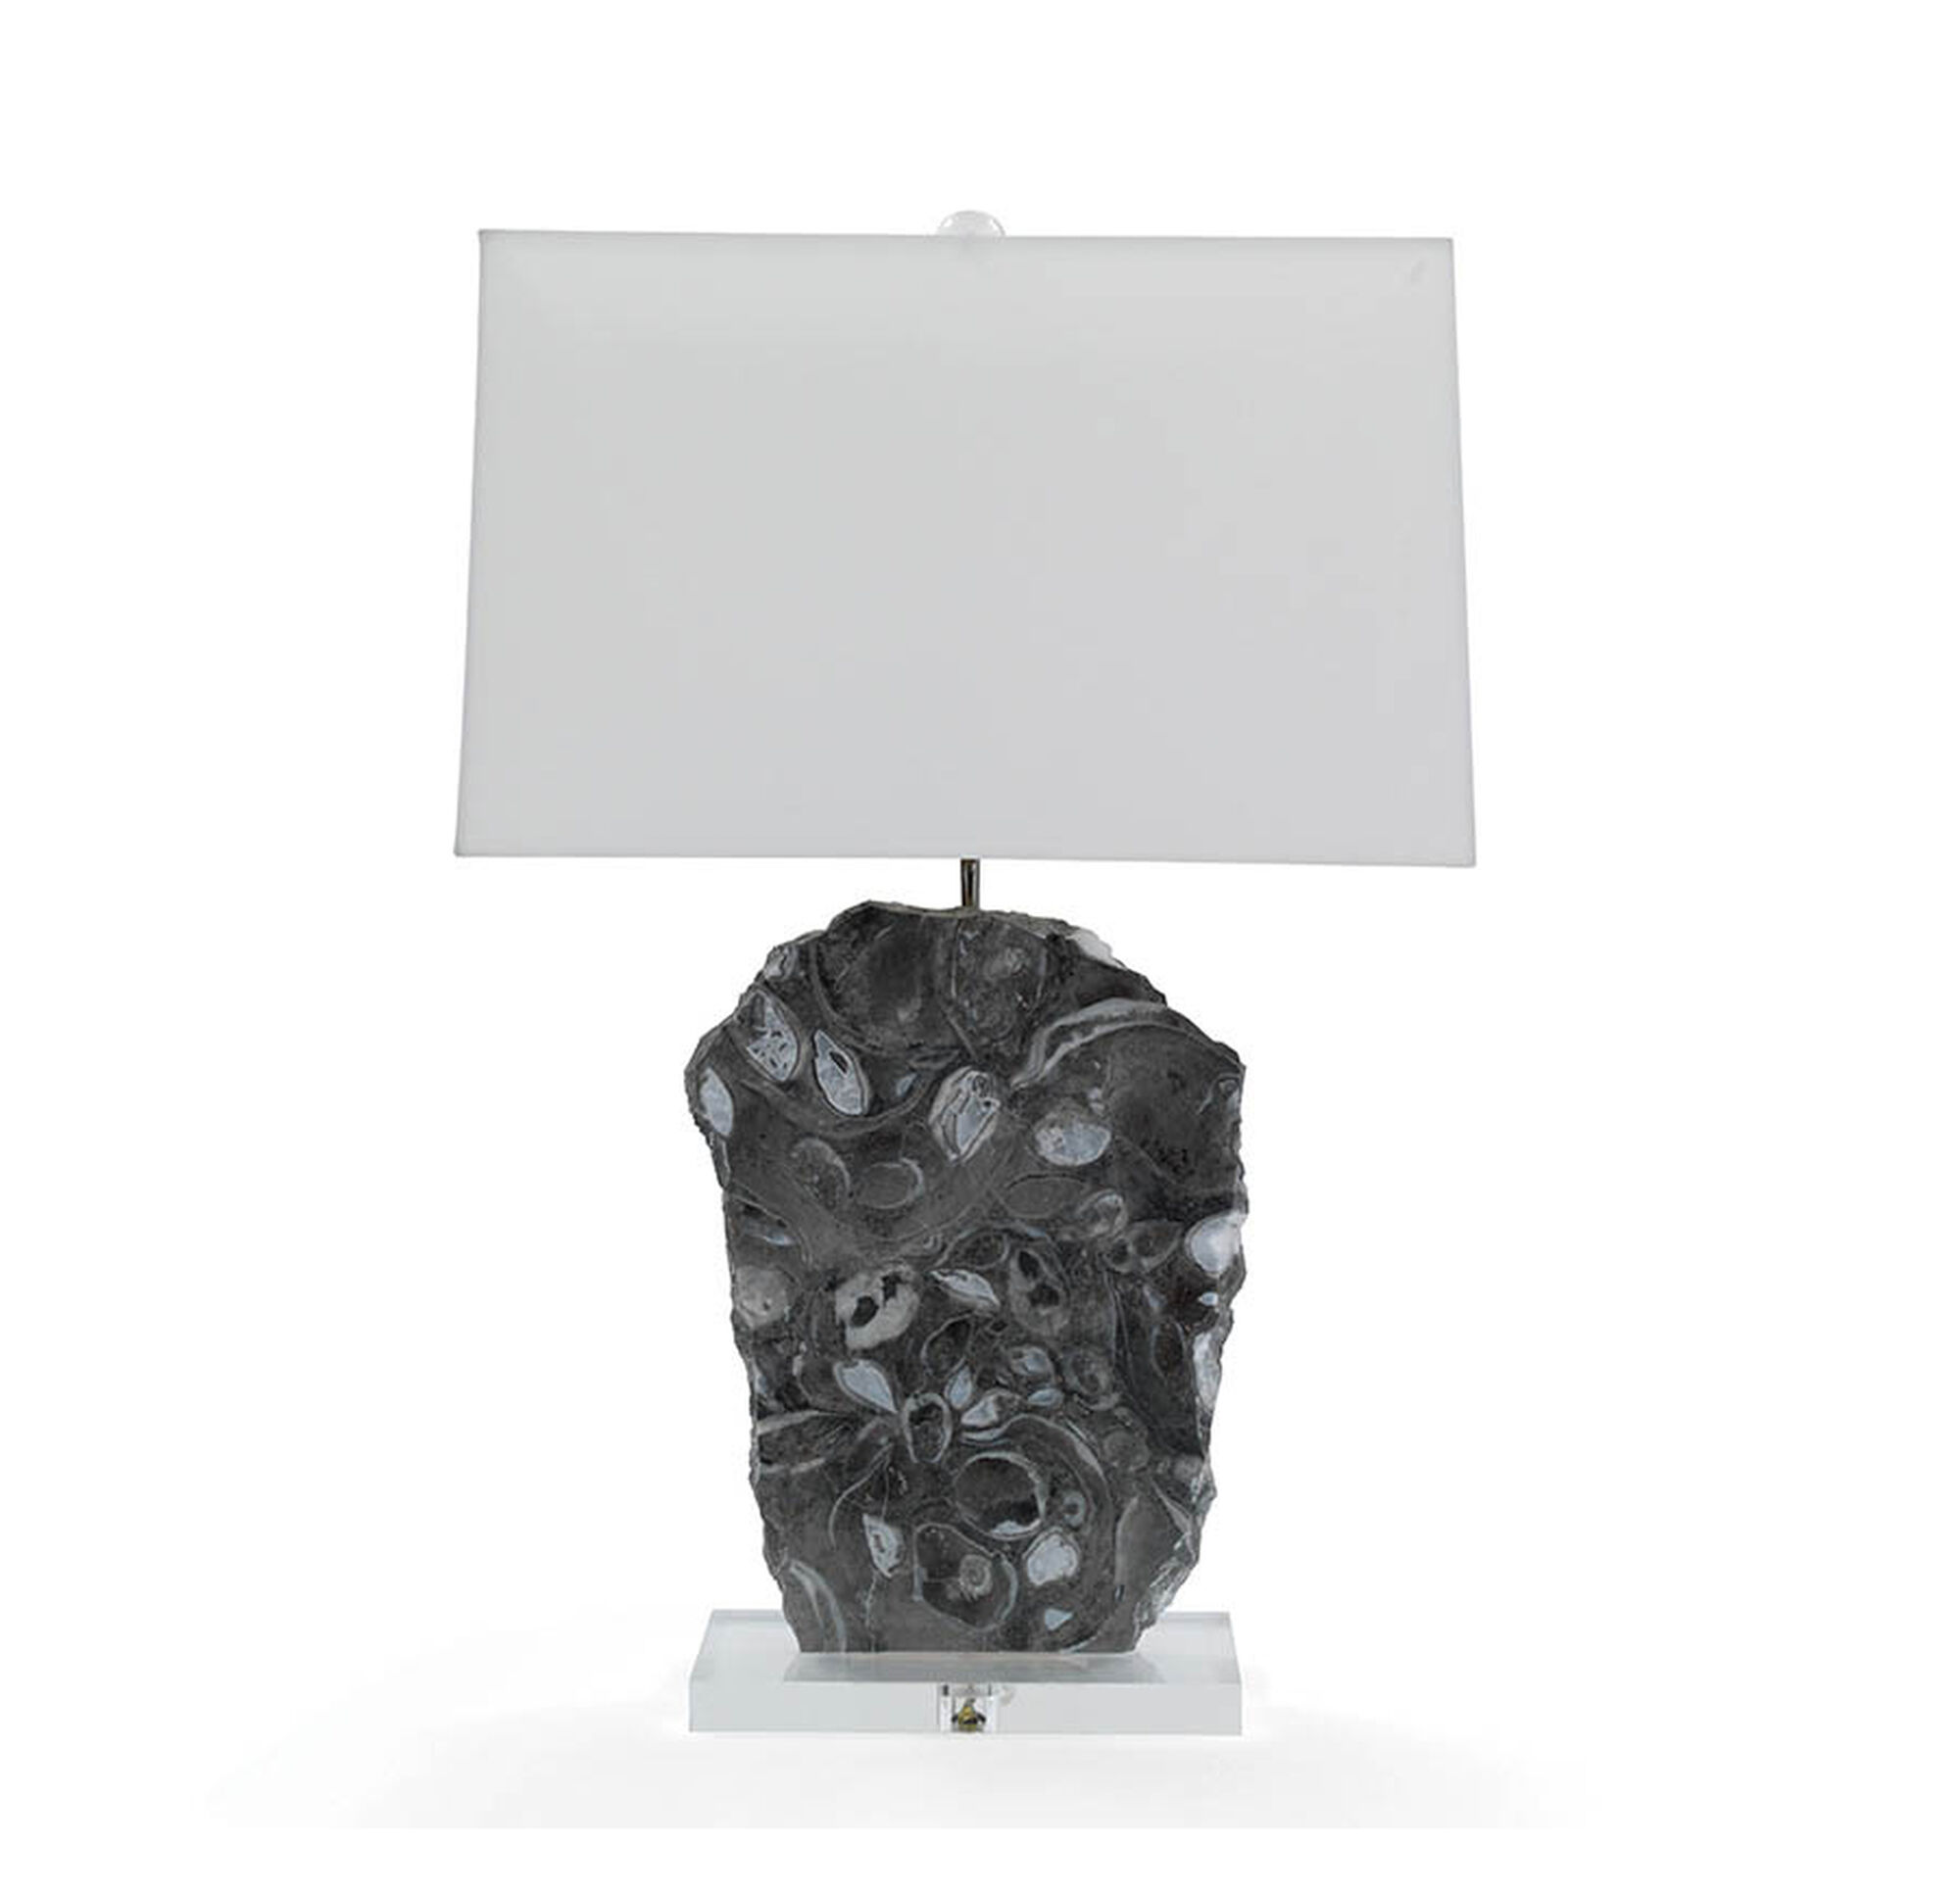 brand strapped p dimond marble s new brass lamp price lowest